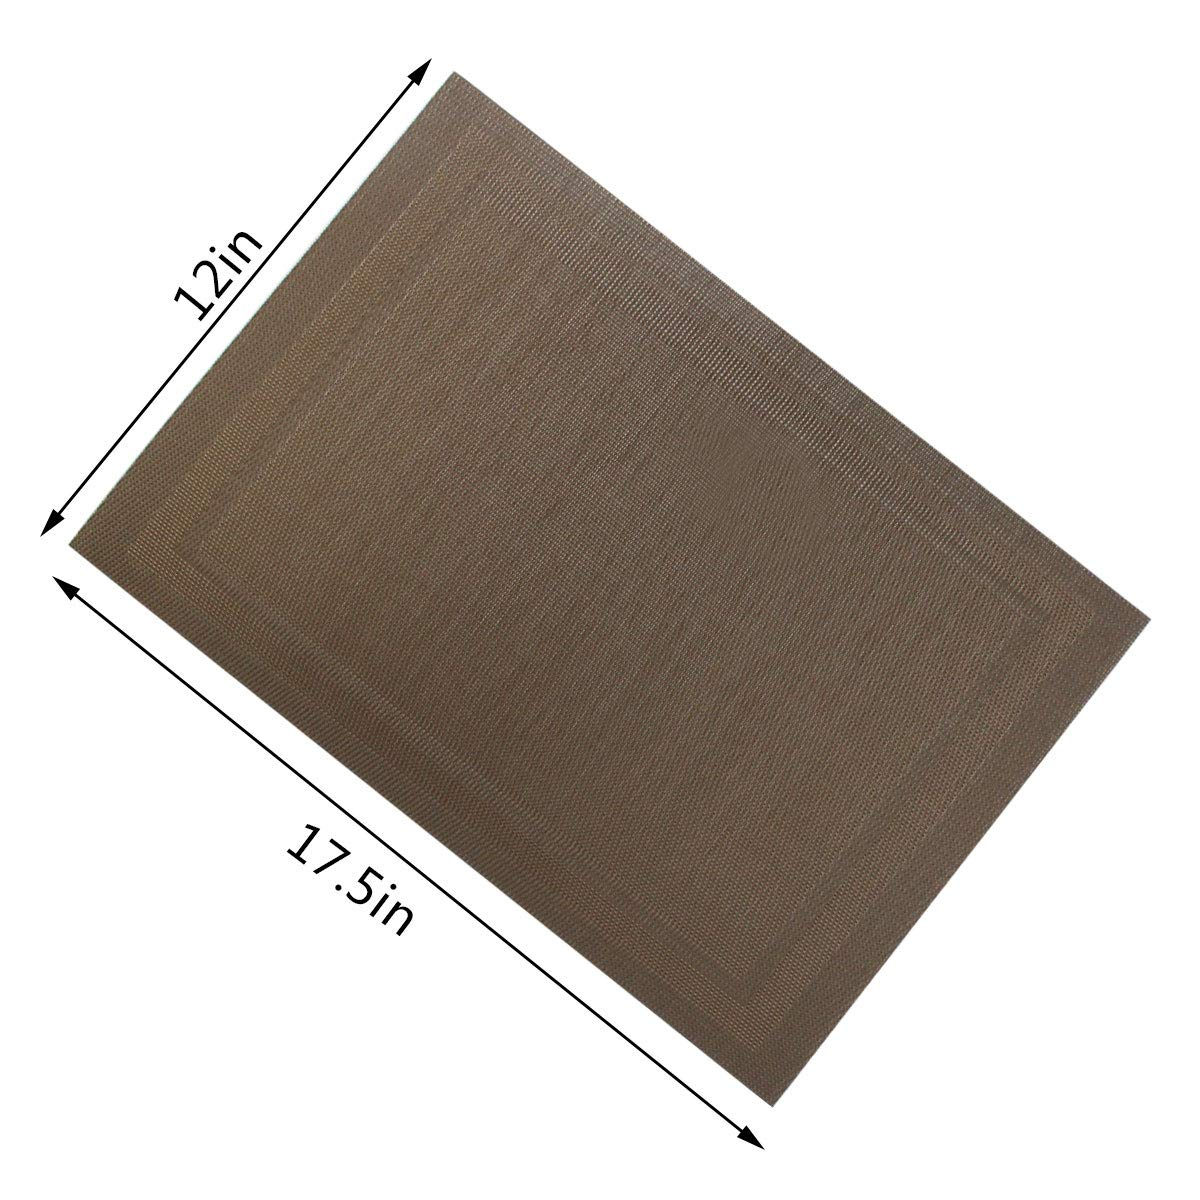 Restaurant, Grey and Brown Set of 8 Tongcloud Washable Placemats Braided Mat Stain Resistant Anti-Skid Table Mats Vinyl Mats for Kitchen Hotel